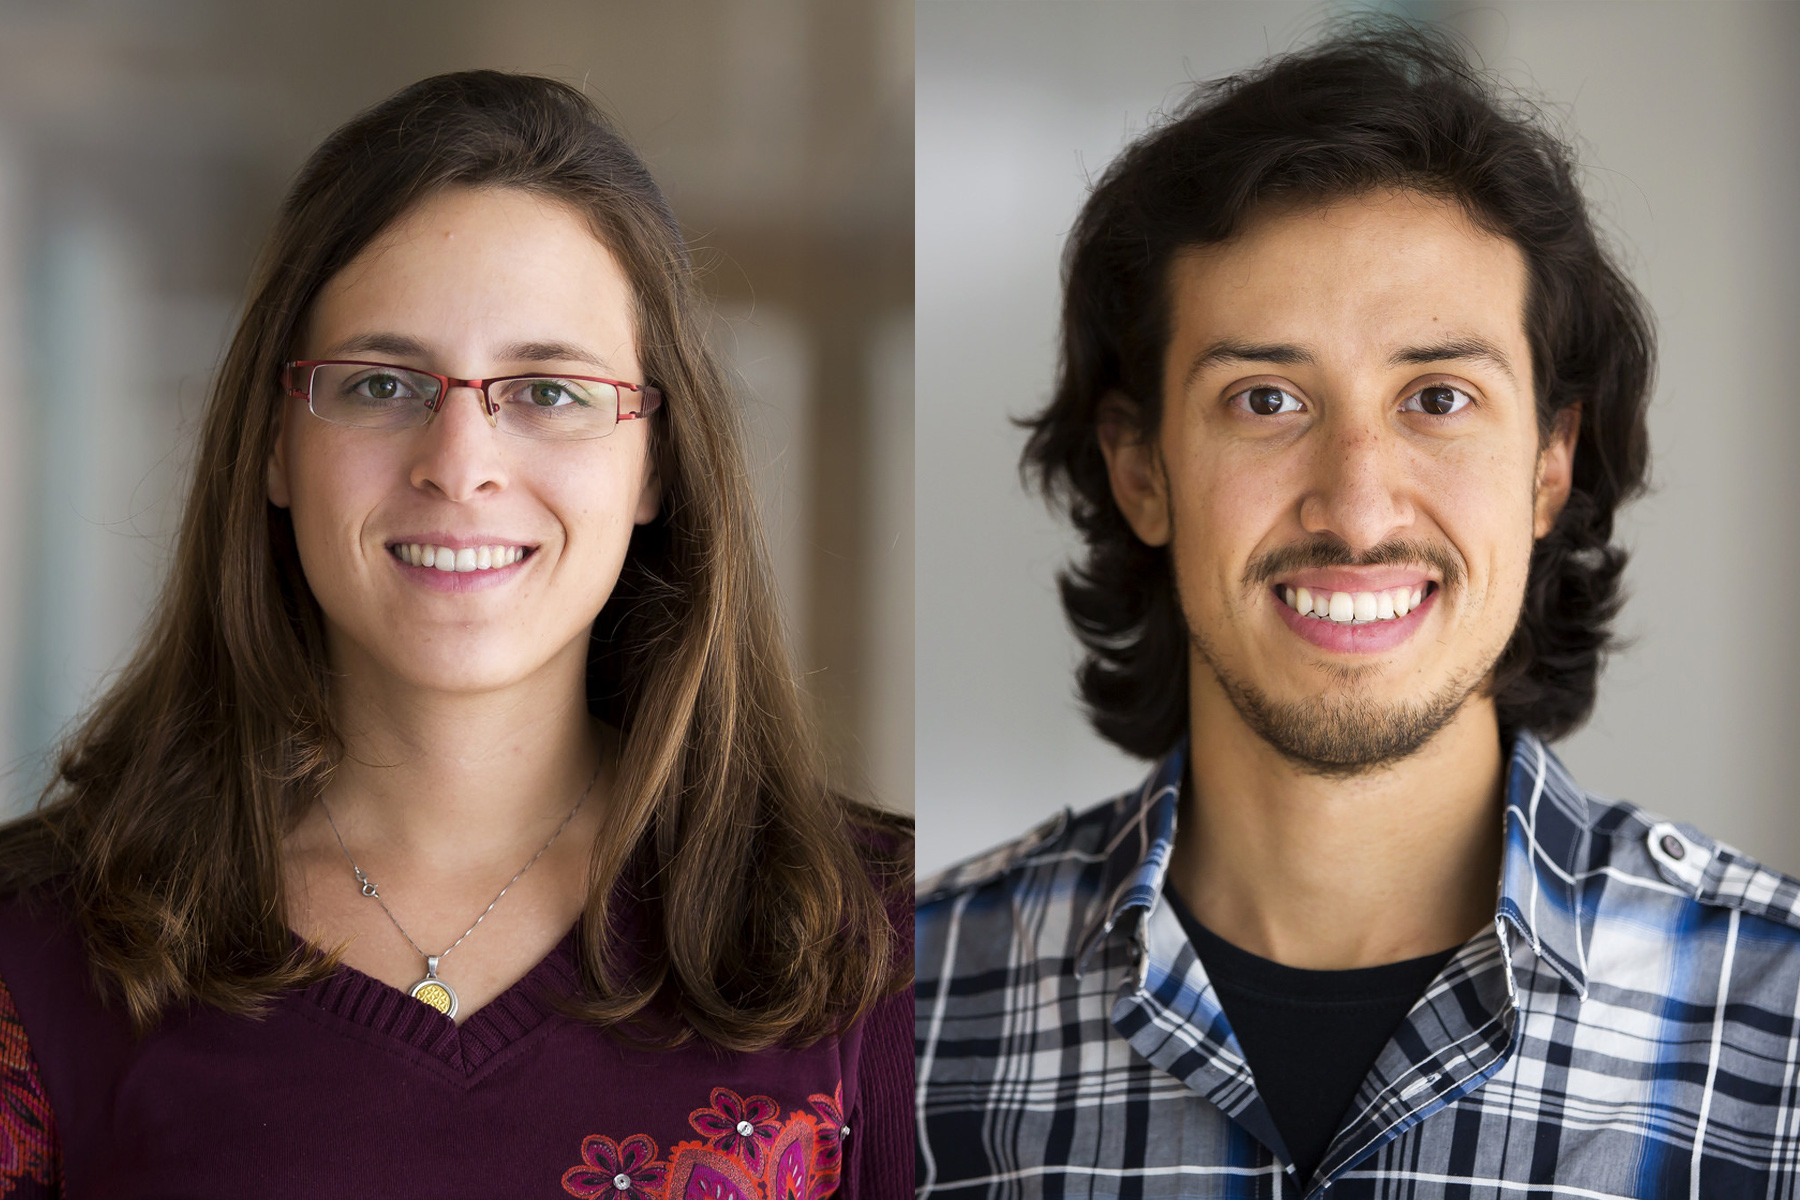 CSE Researchers Danai Koutra and Walter Lasecki